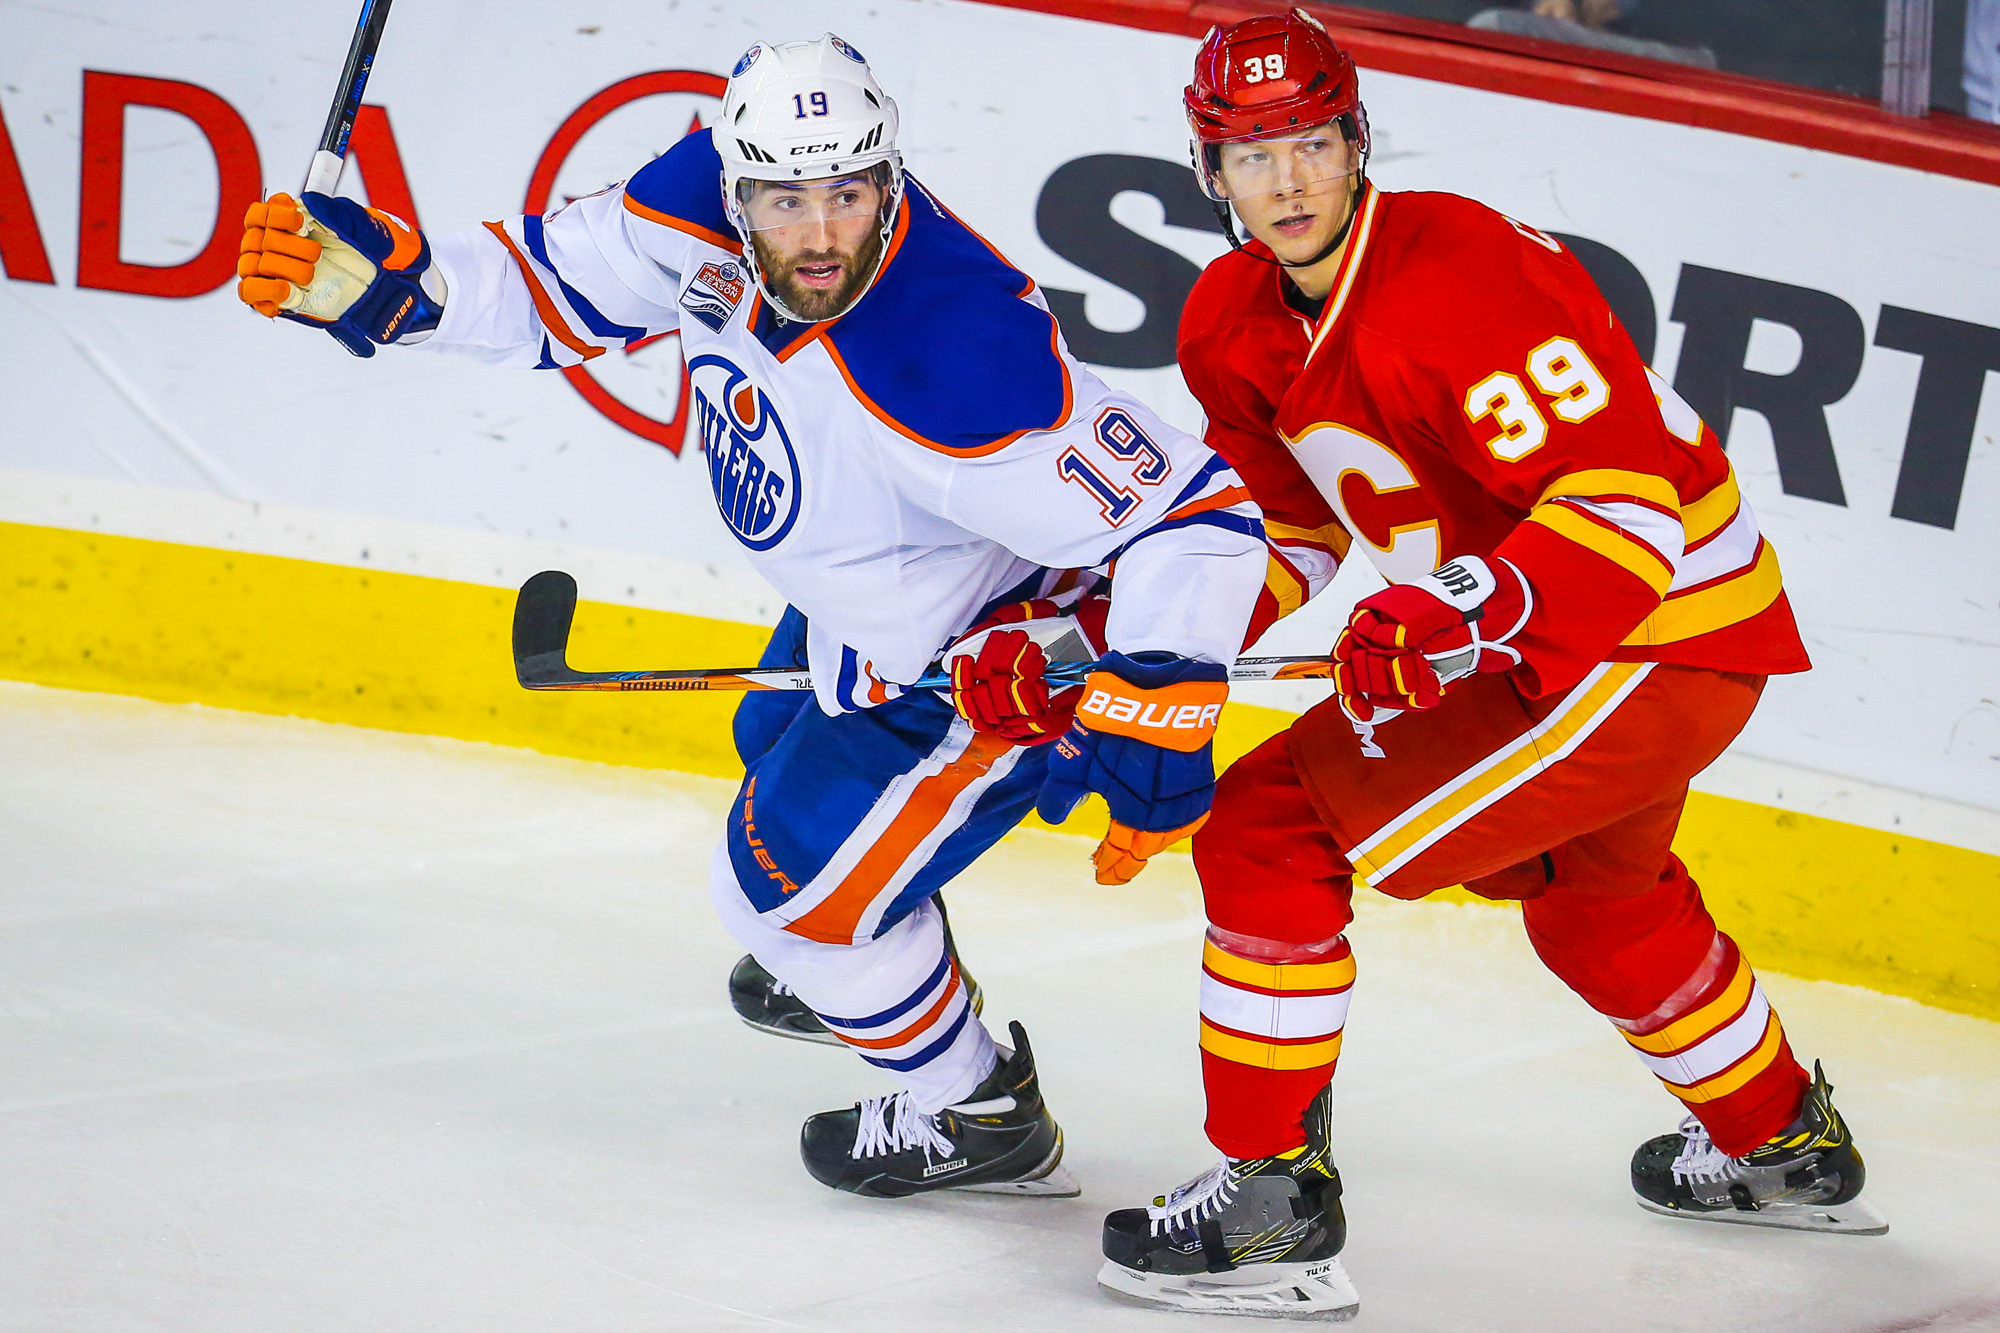 9618310-nhl-edmonton-oilers-at-calgary-flames